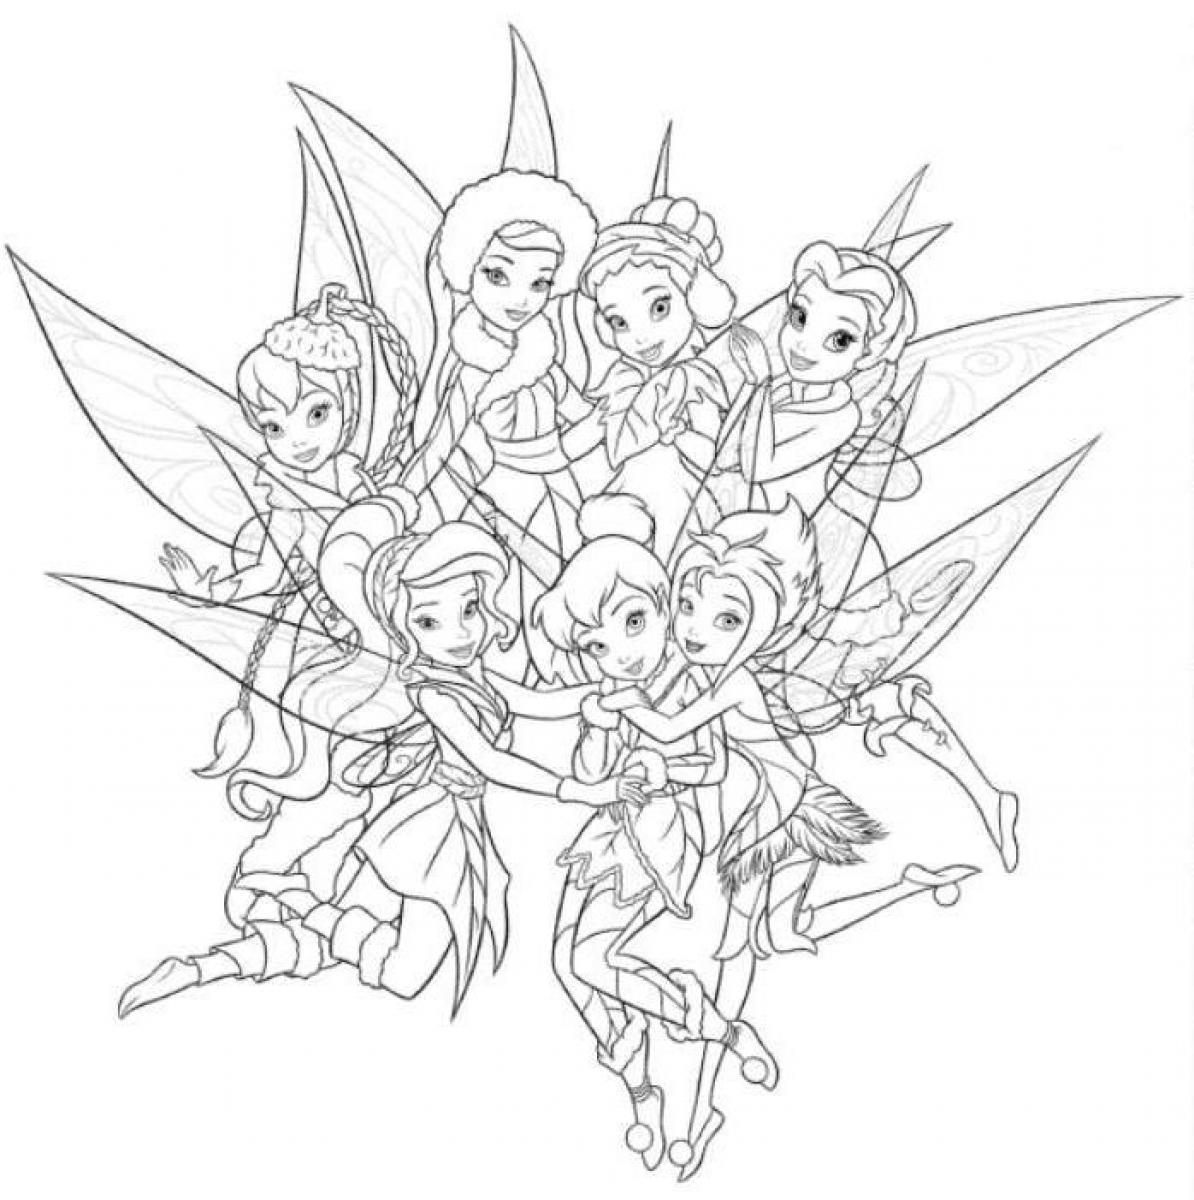 1194x1200 Coloring Pages Tinkerbell And Periwinkle Allmadecine Weddings